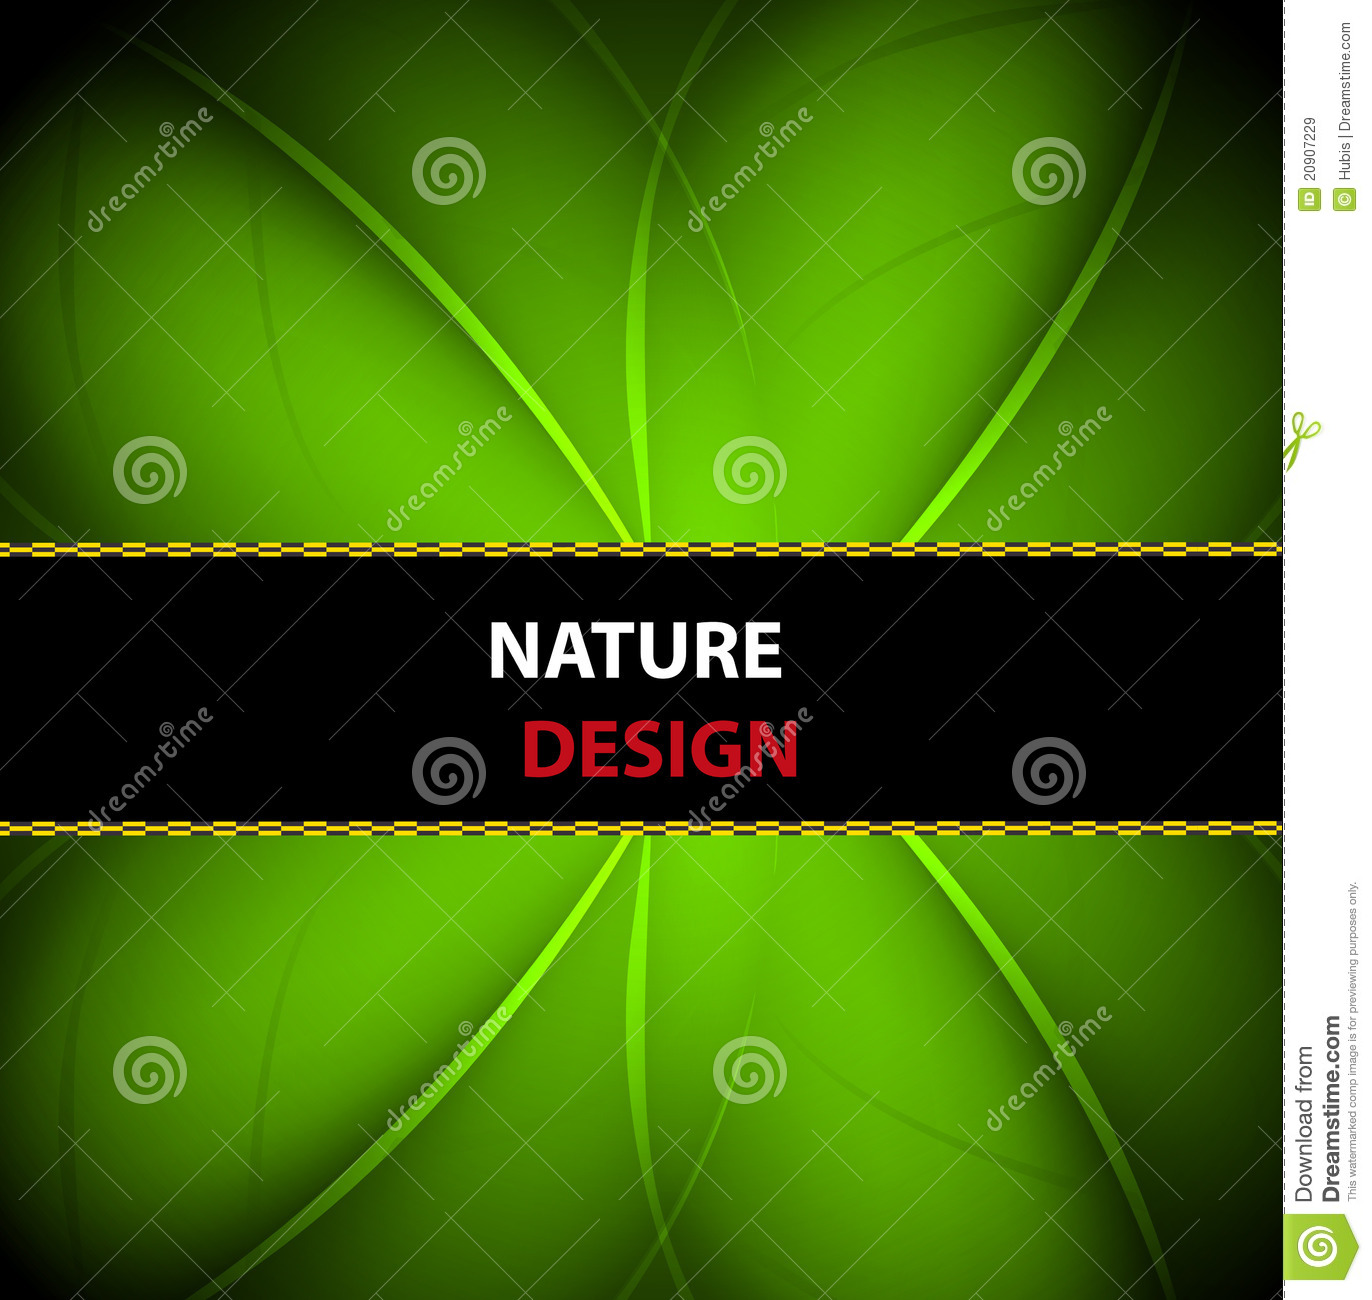 Nature Banner Background Design Royalty Free Stock Images - Image ...